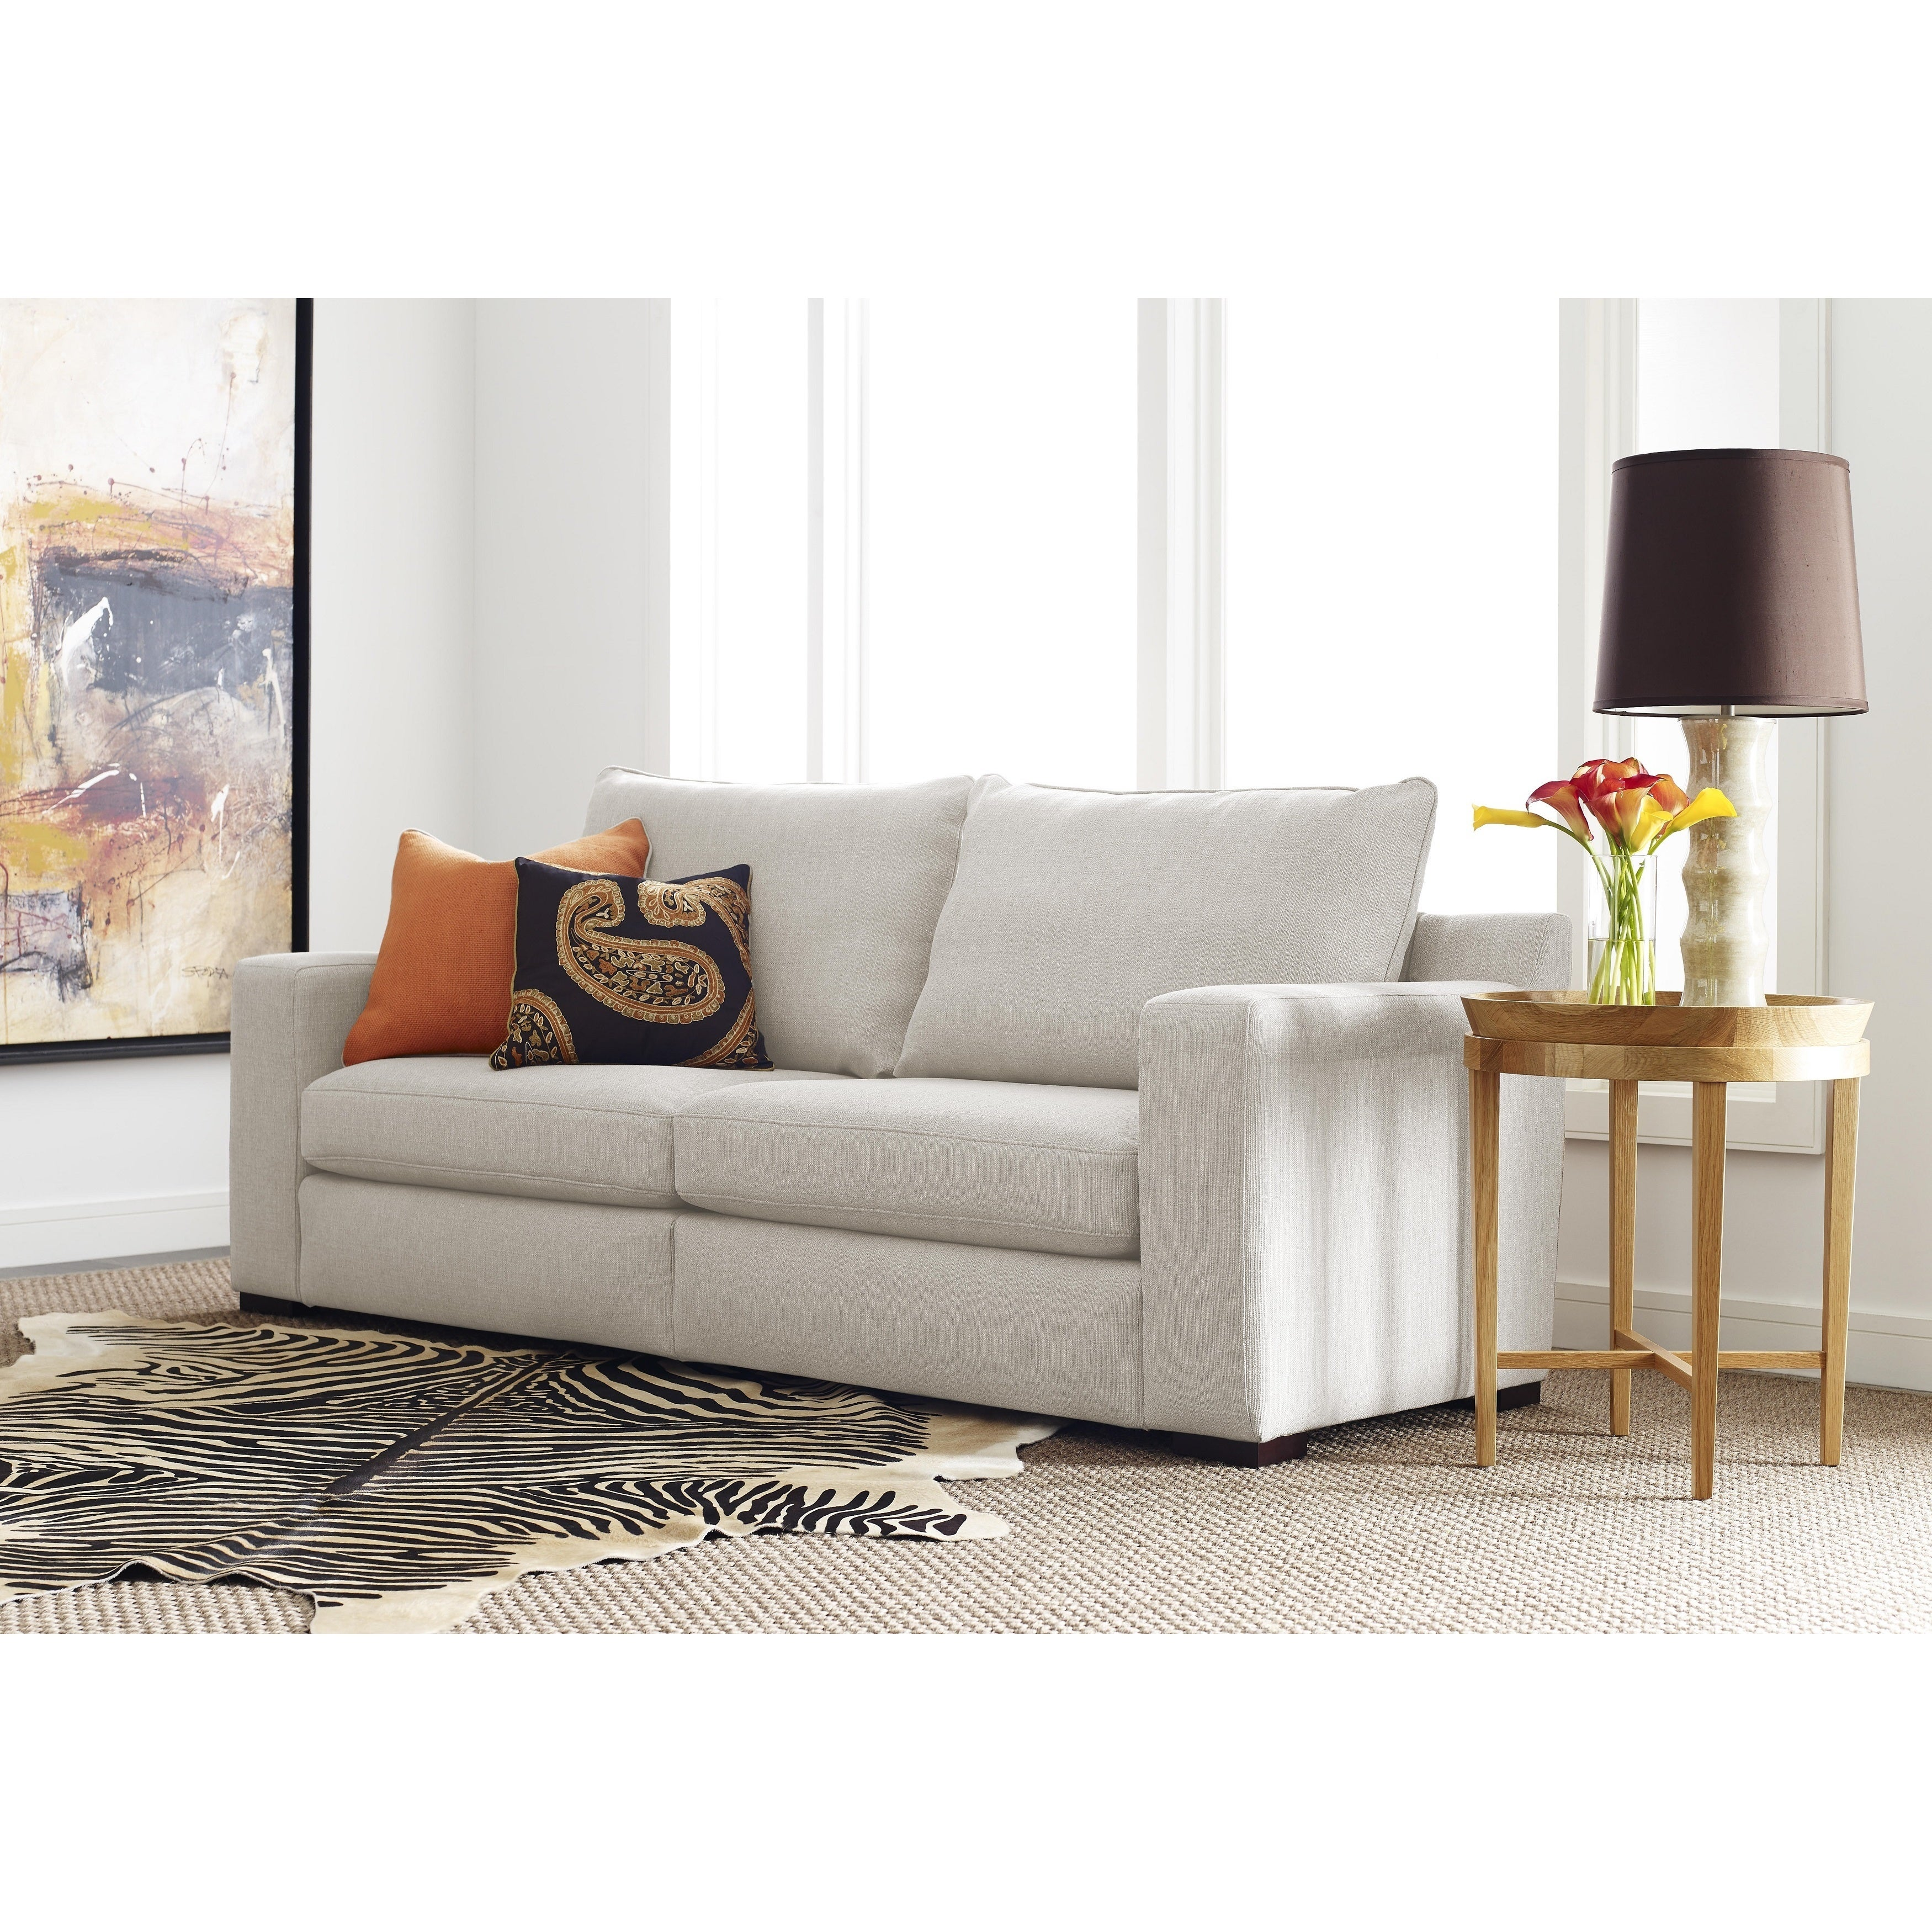 Serta Deep Seating Geneva 85-inch Grey Sofa - Free Shipping Today ...